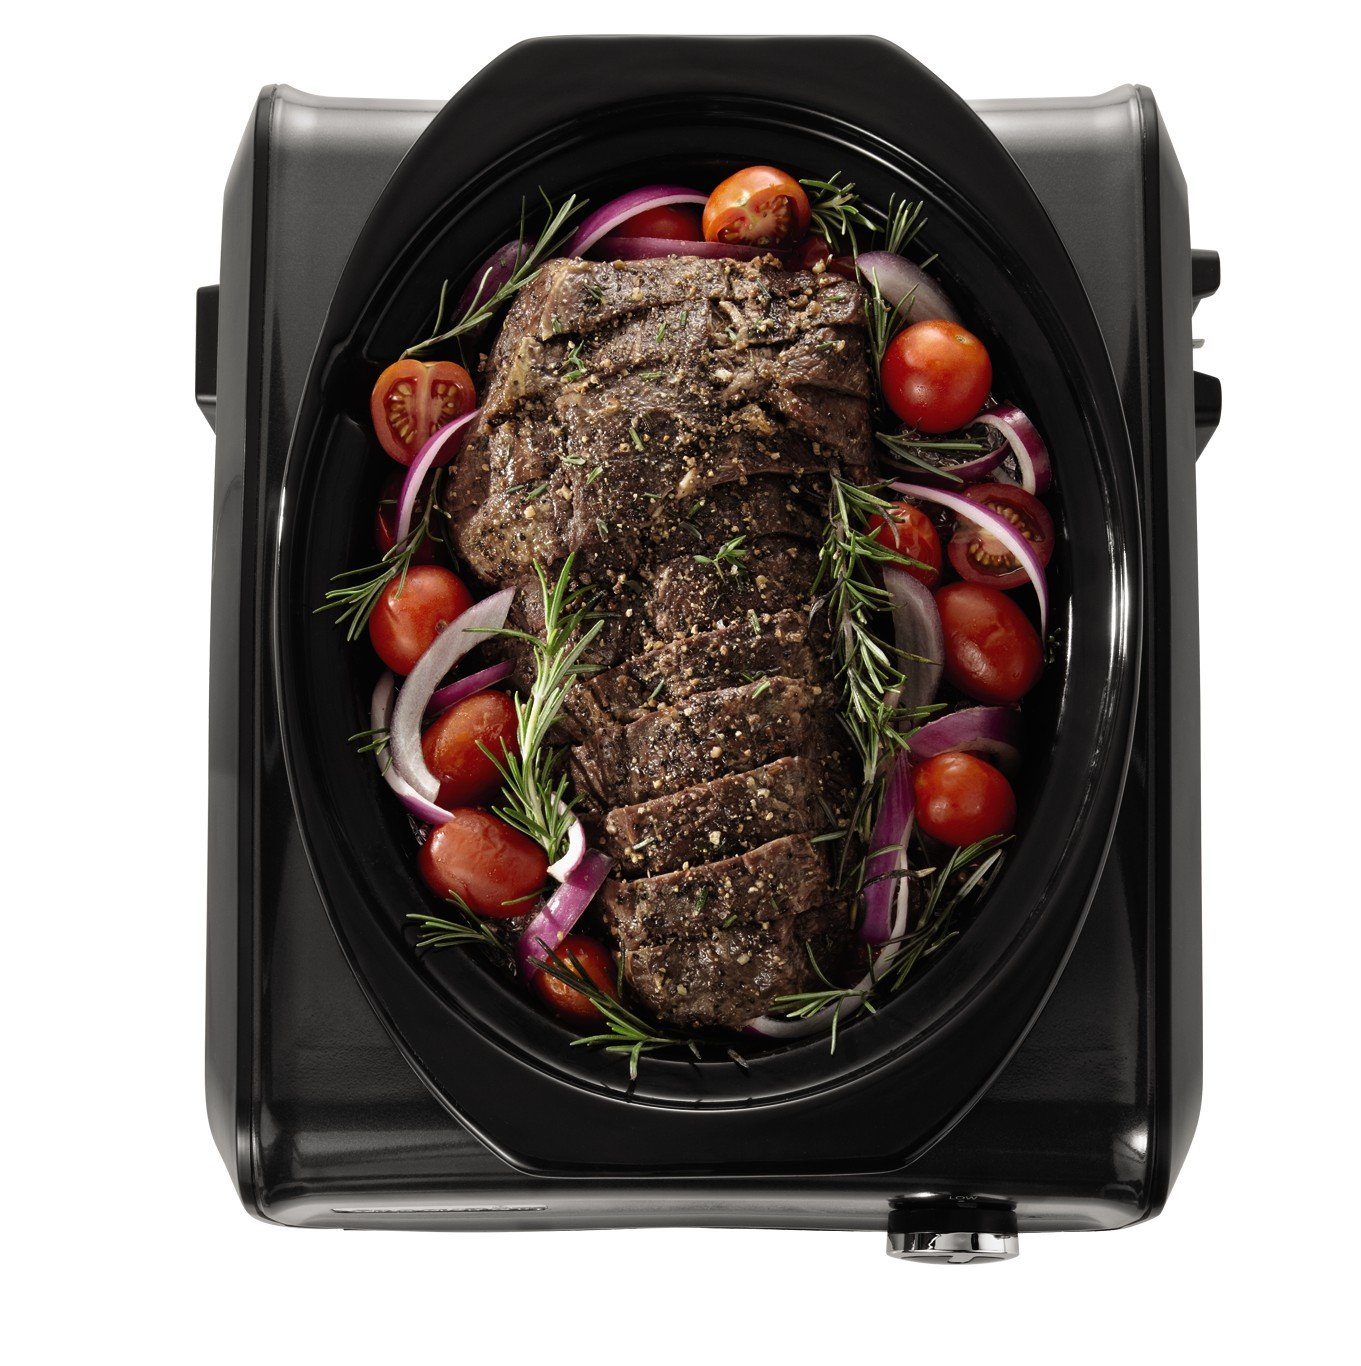 Crock Pot Hook Up Connectable Entertaining System, 3.5 Quart, Metallic  Charcoal